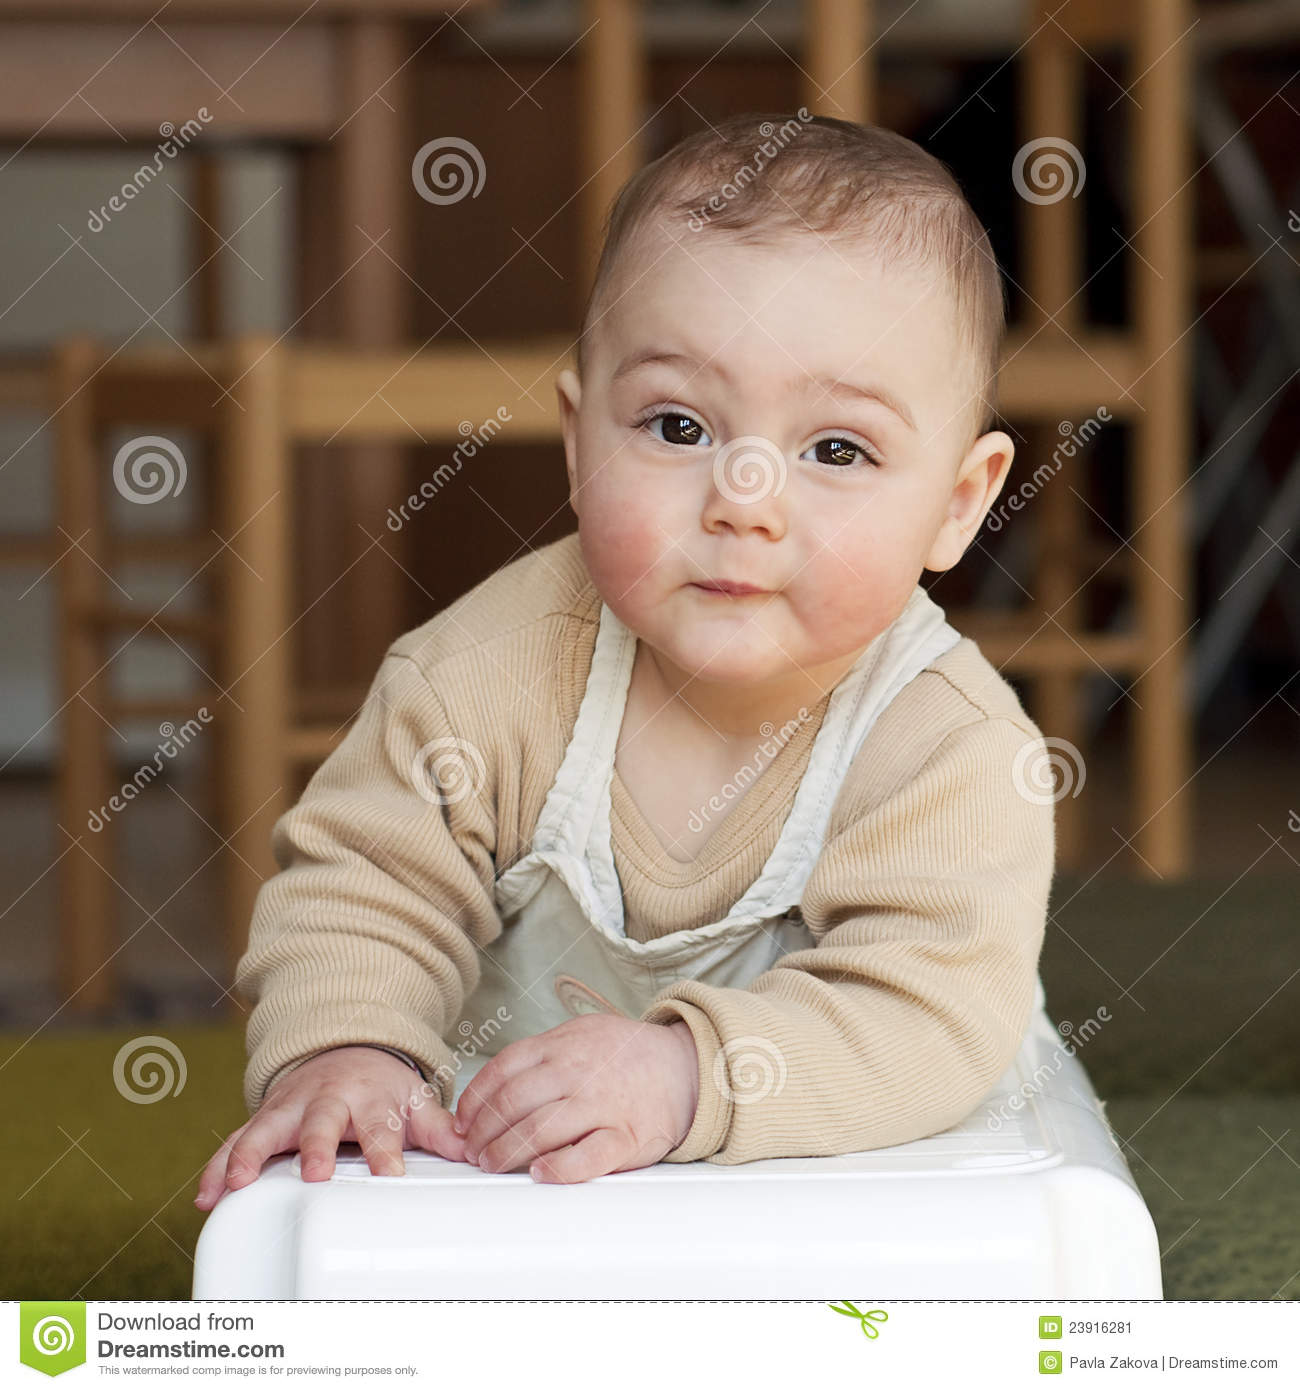 54cd35d99f84 Baby stock image. Image of smile